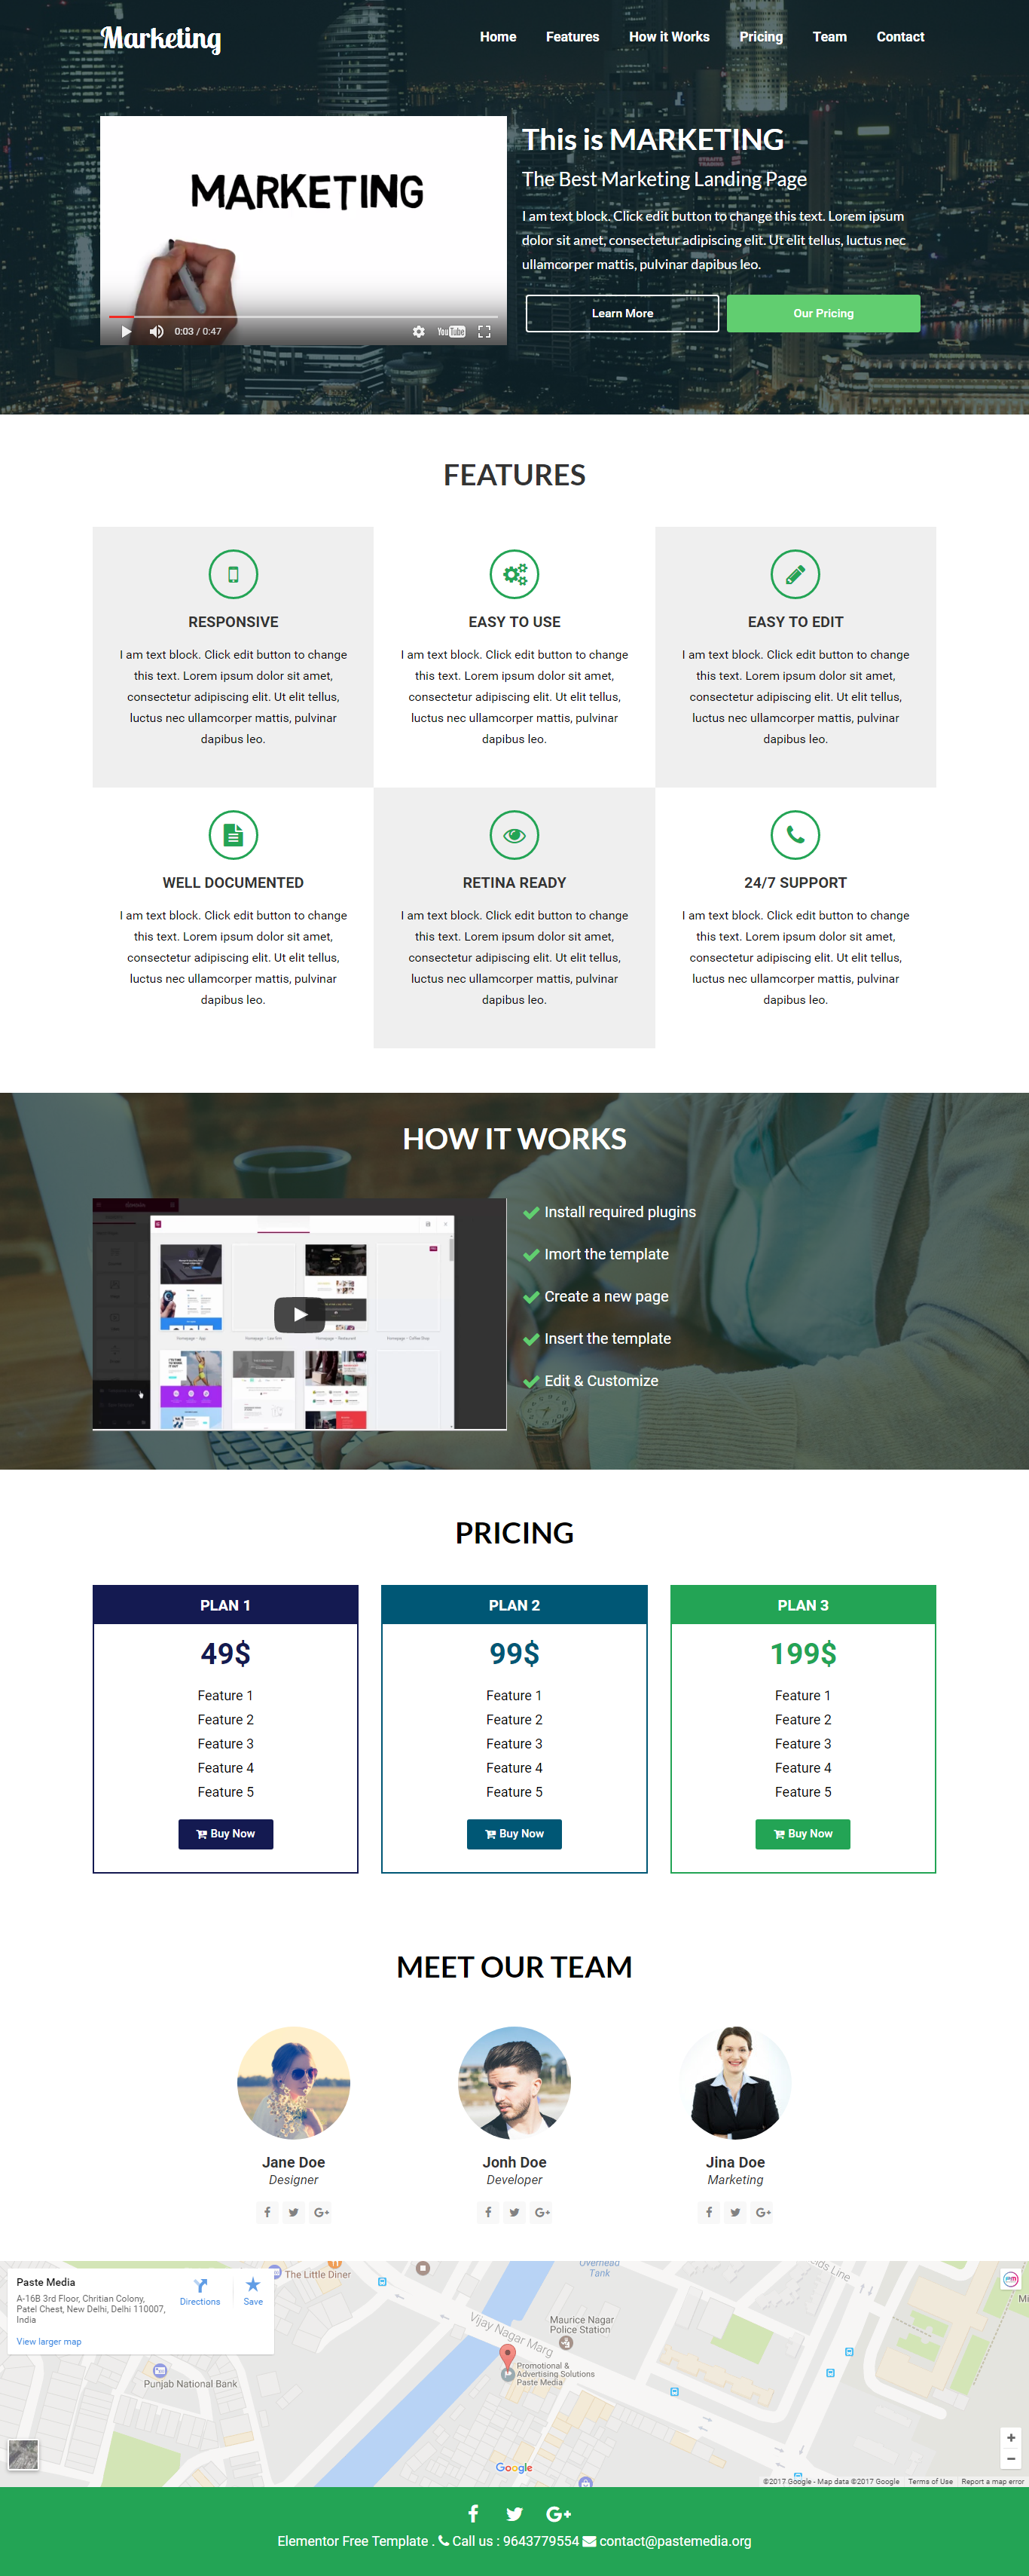 Elementor Free Template for Marketing Landing Page Wordpress